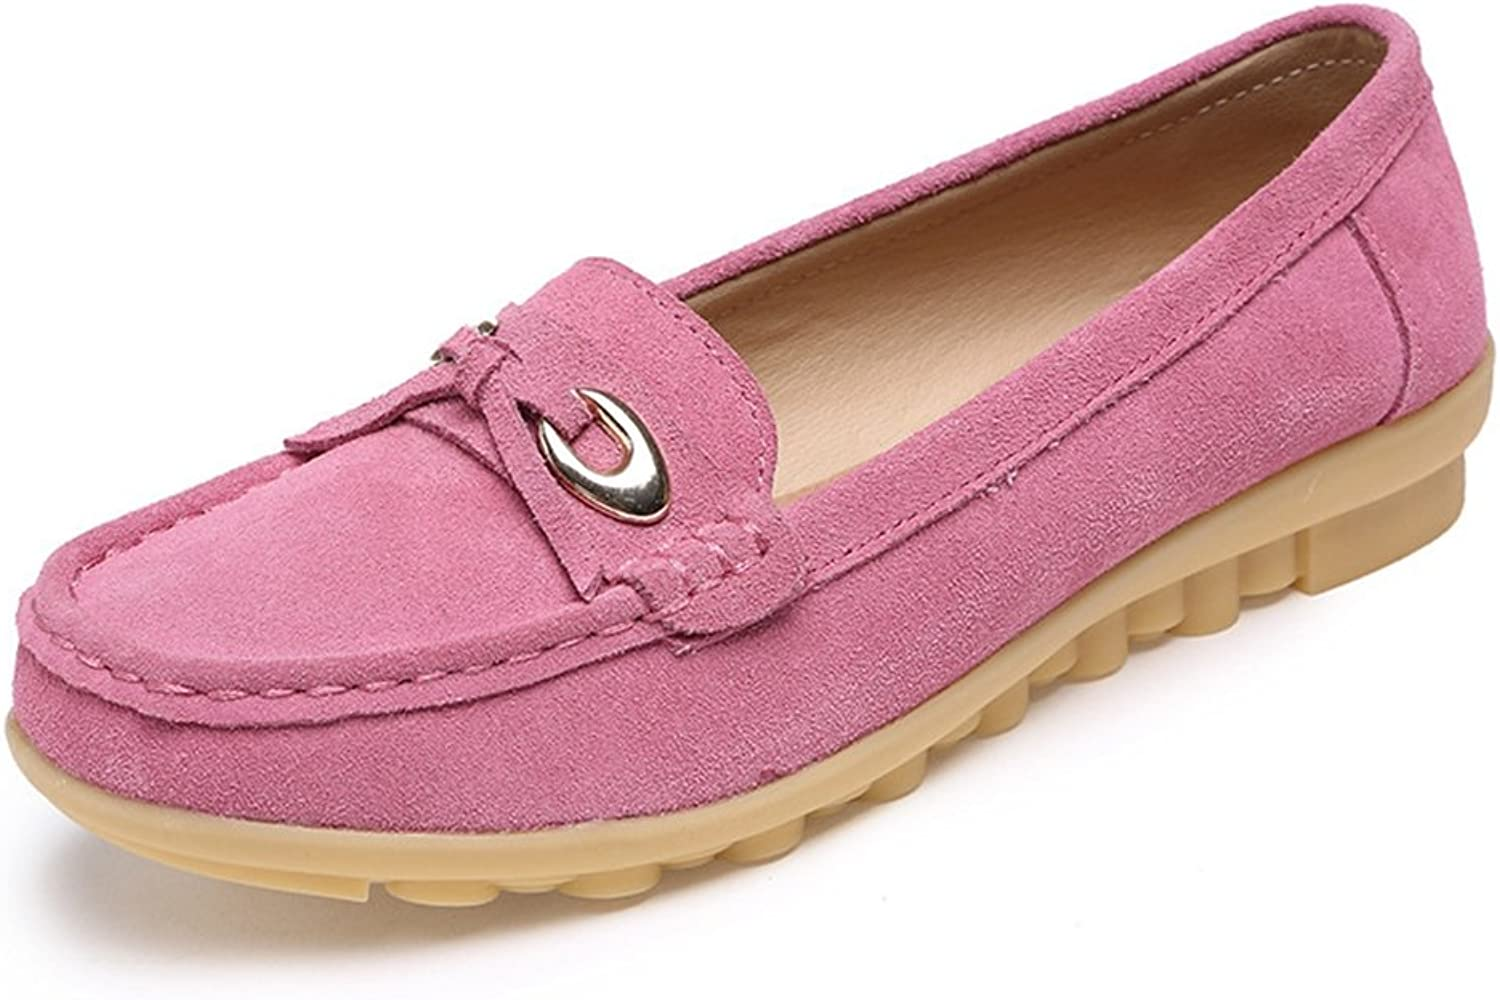 T-JULY Loafers shoes for Women - Bowknot Fashion Slip On Low-Heel Round Toe Suede Casual Penny Flat